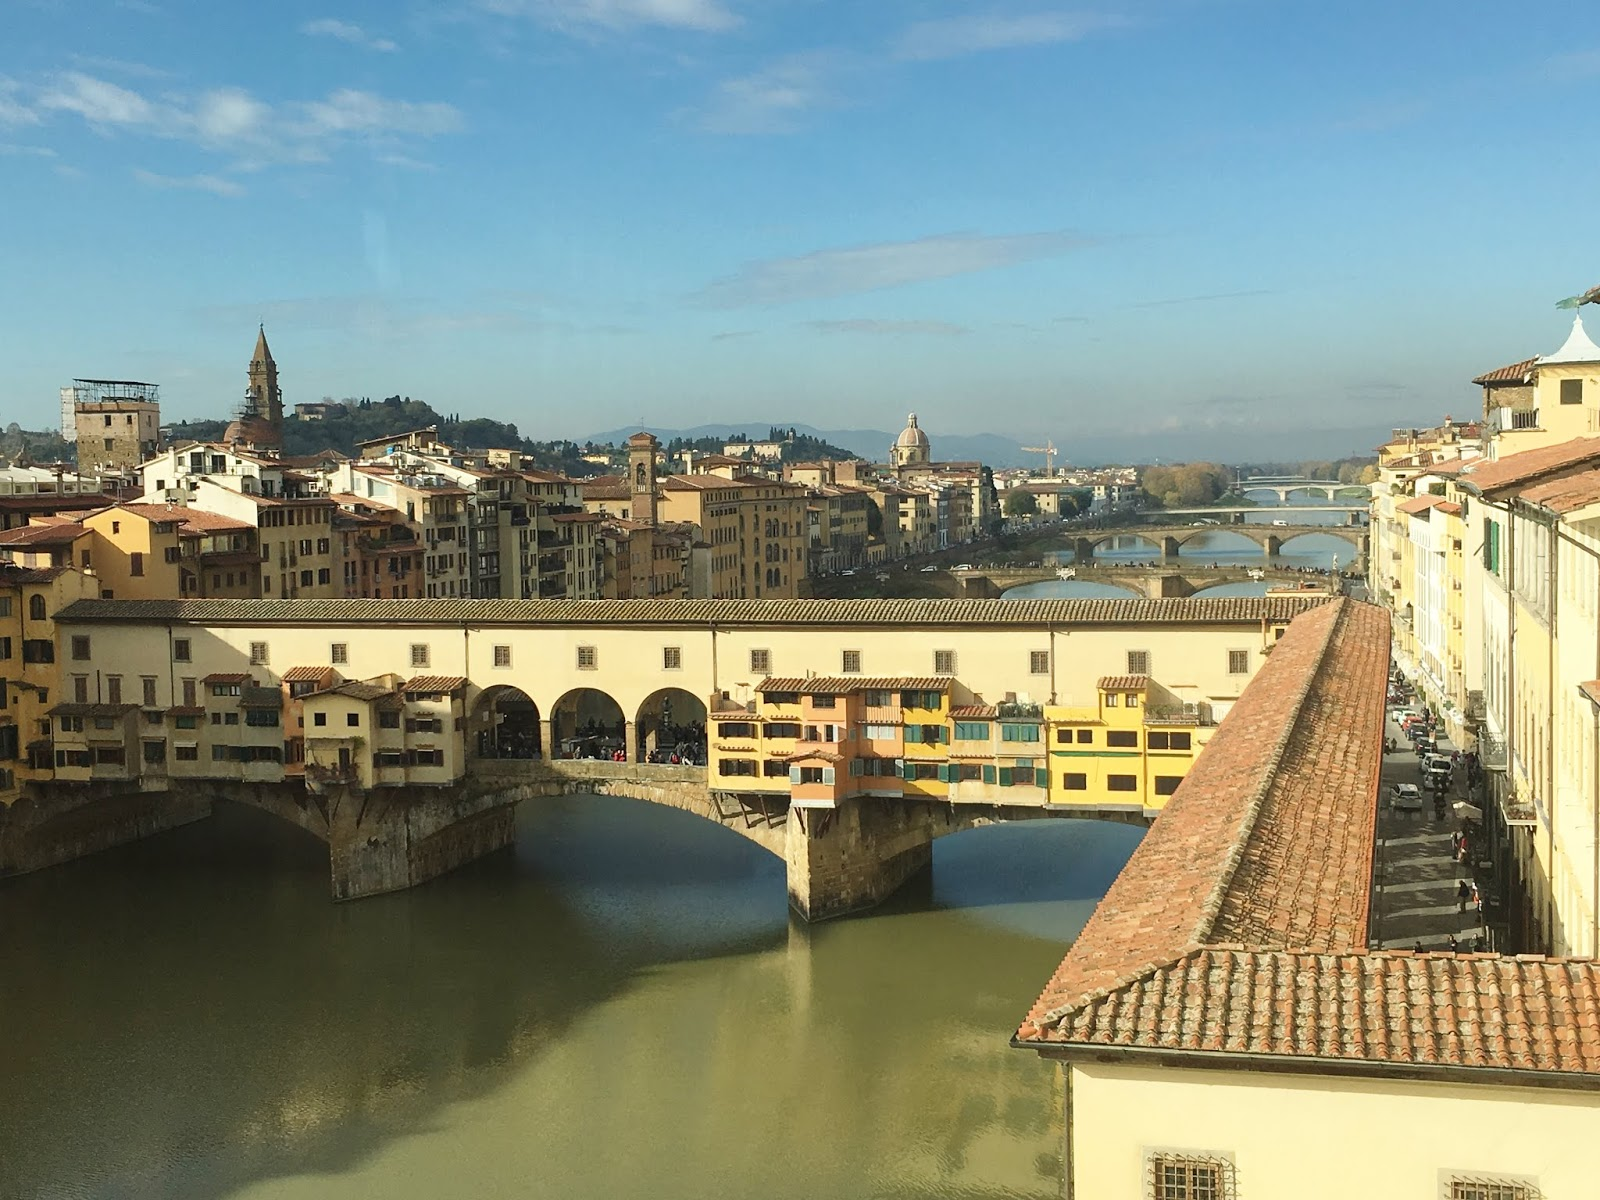 Hastings Battleaxe goes to Florence